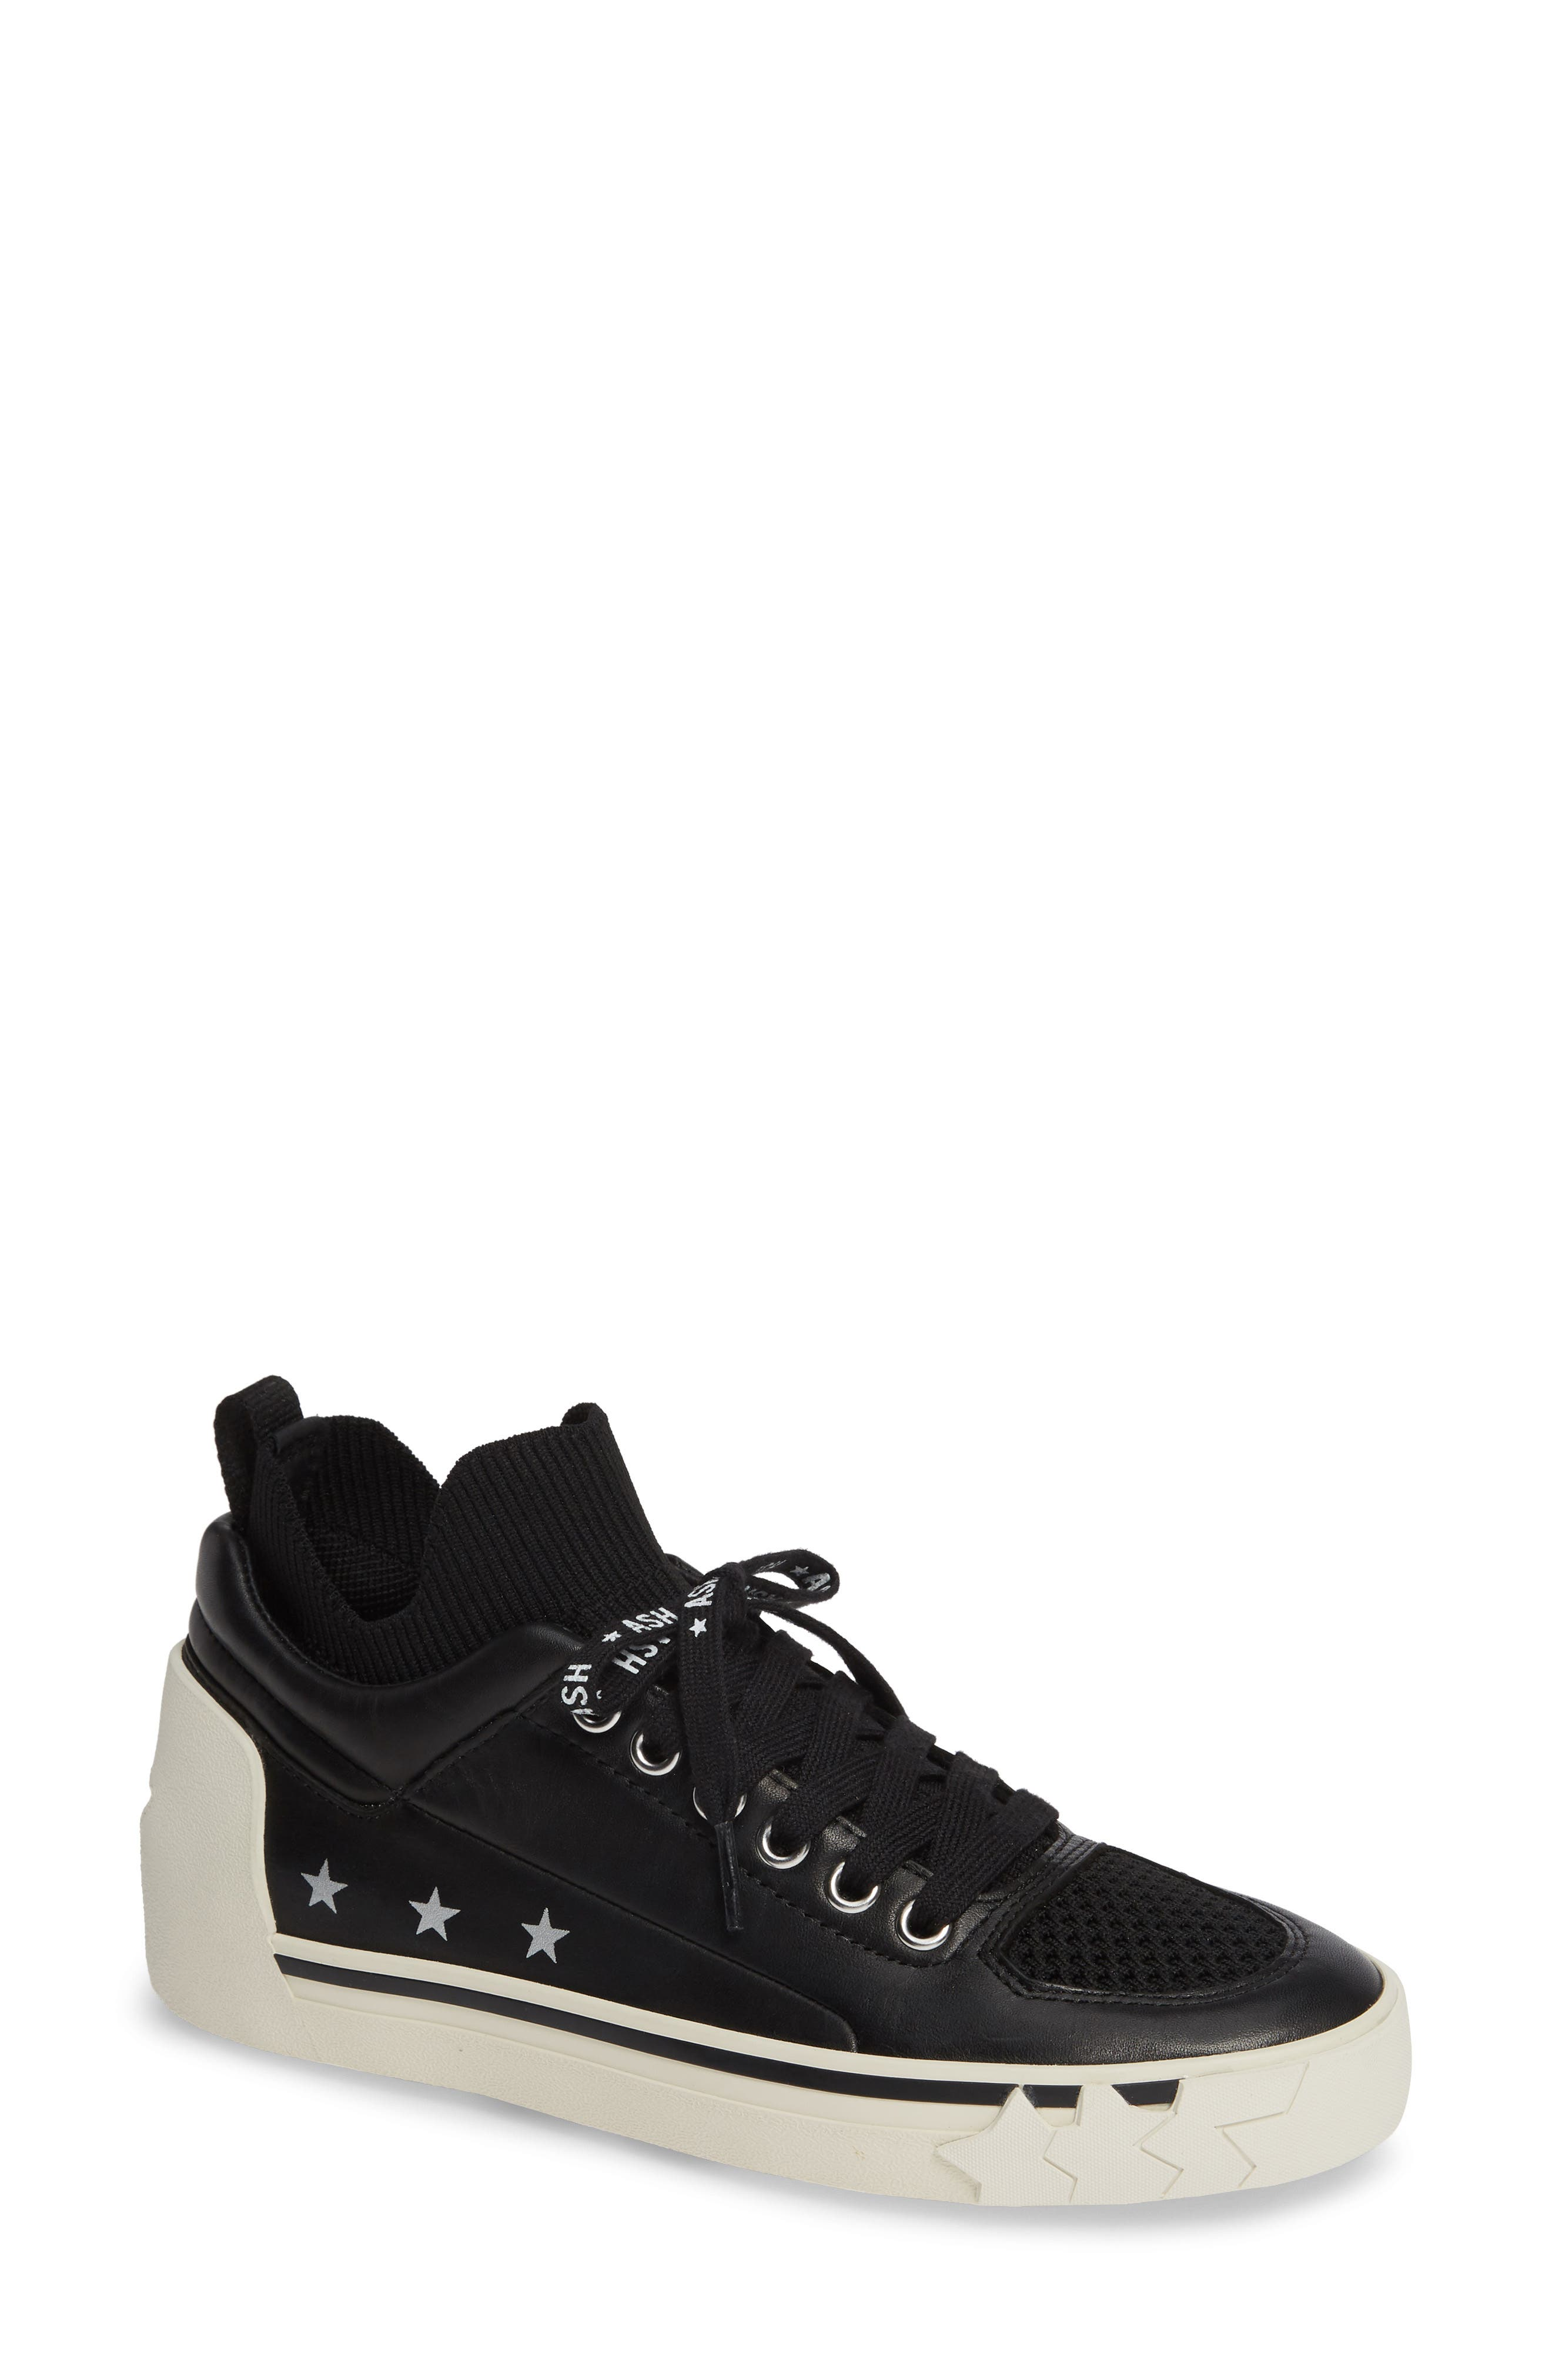 Ash High Top Sneaker, Black